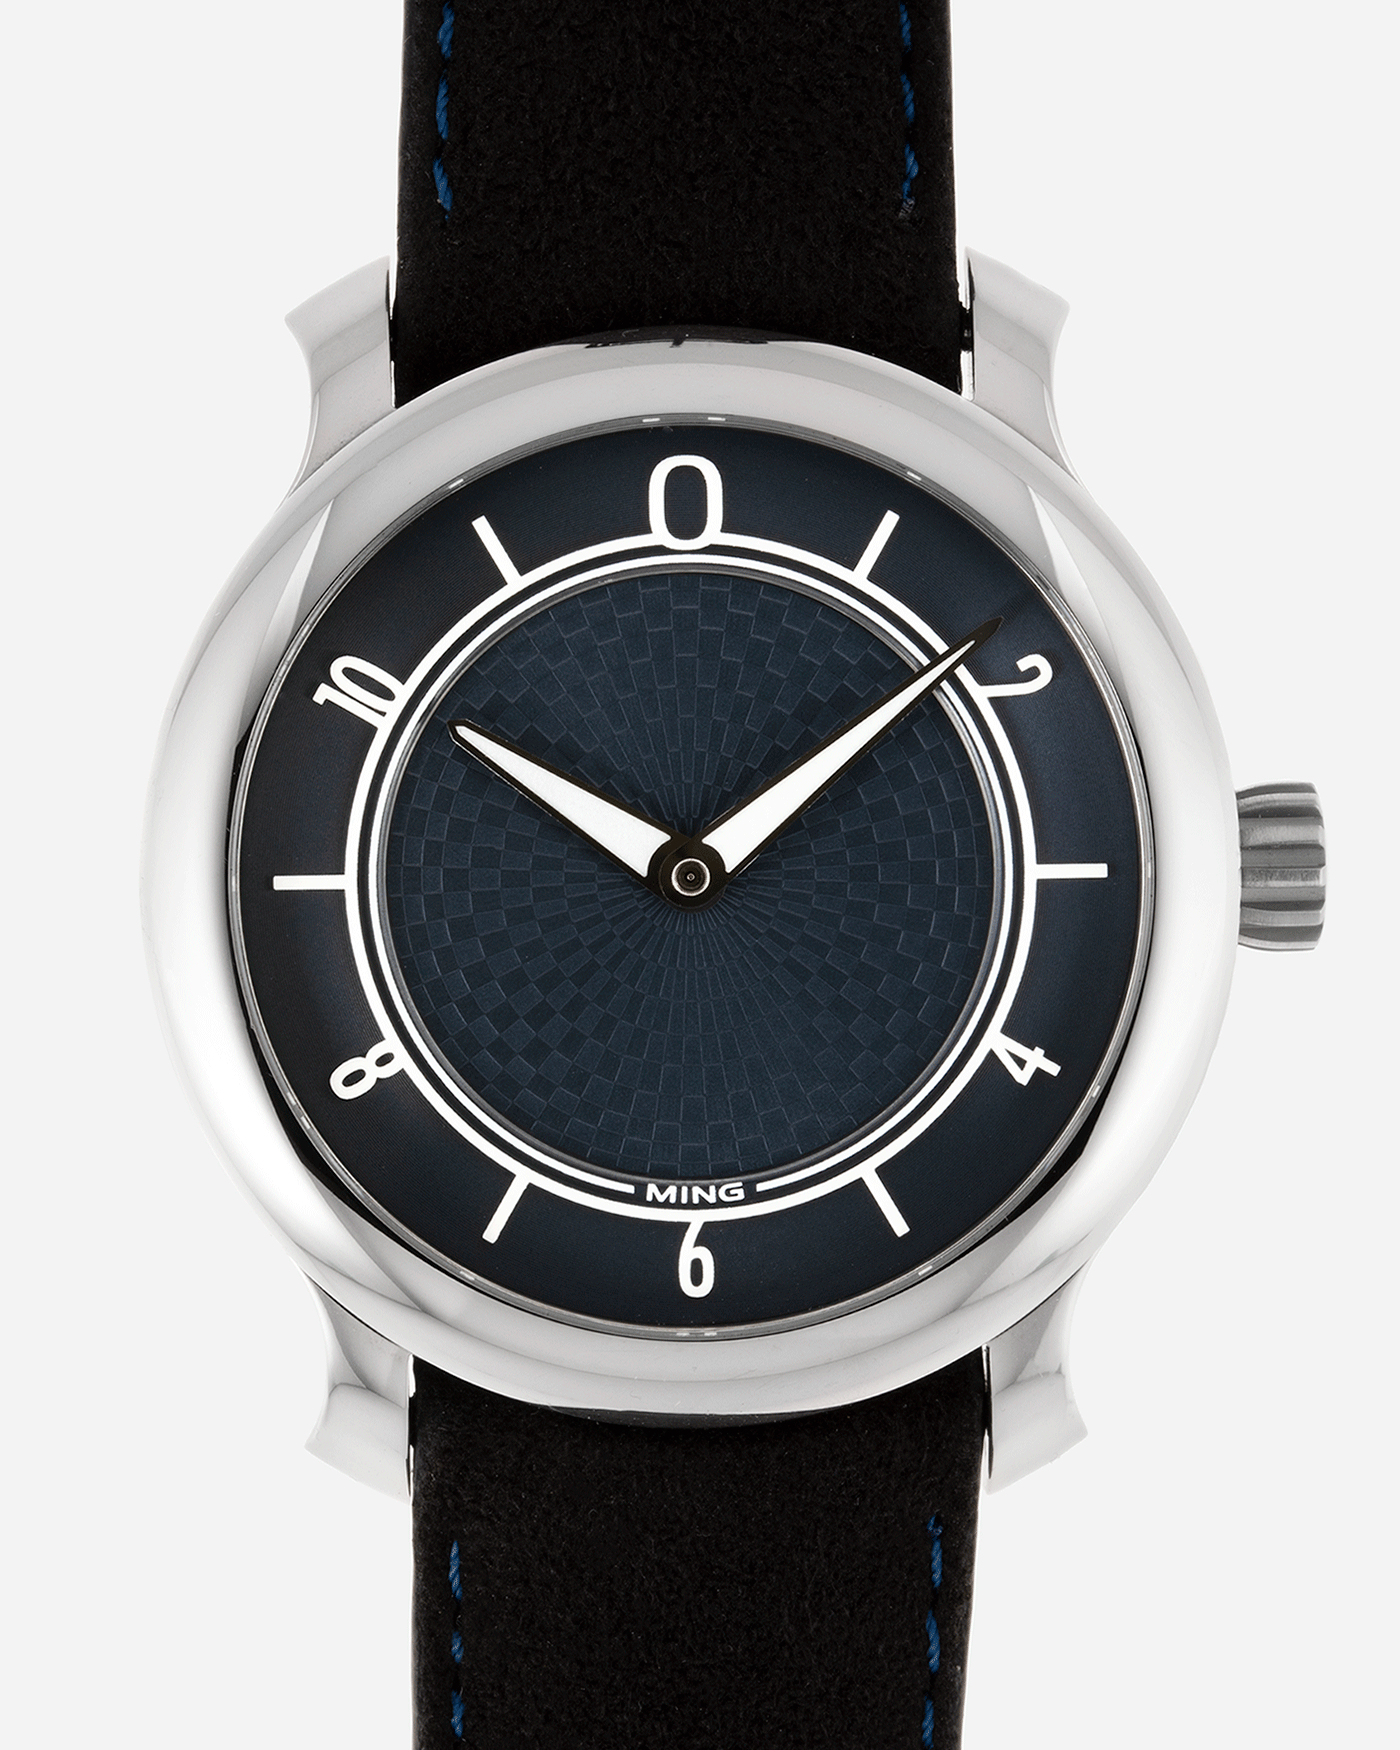 Brand: Ming Year: 2019 Model: 17.06 Material: Stainless Steel Movement: Heavily Modified ETA 2824-2 Case Diameter: 38mm Strap: Jean Rousseau Black Suede with Blue Stitching for MING